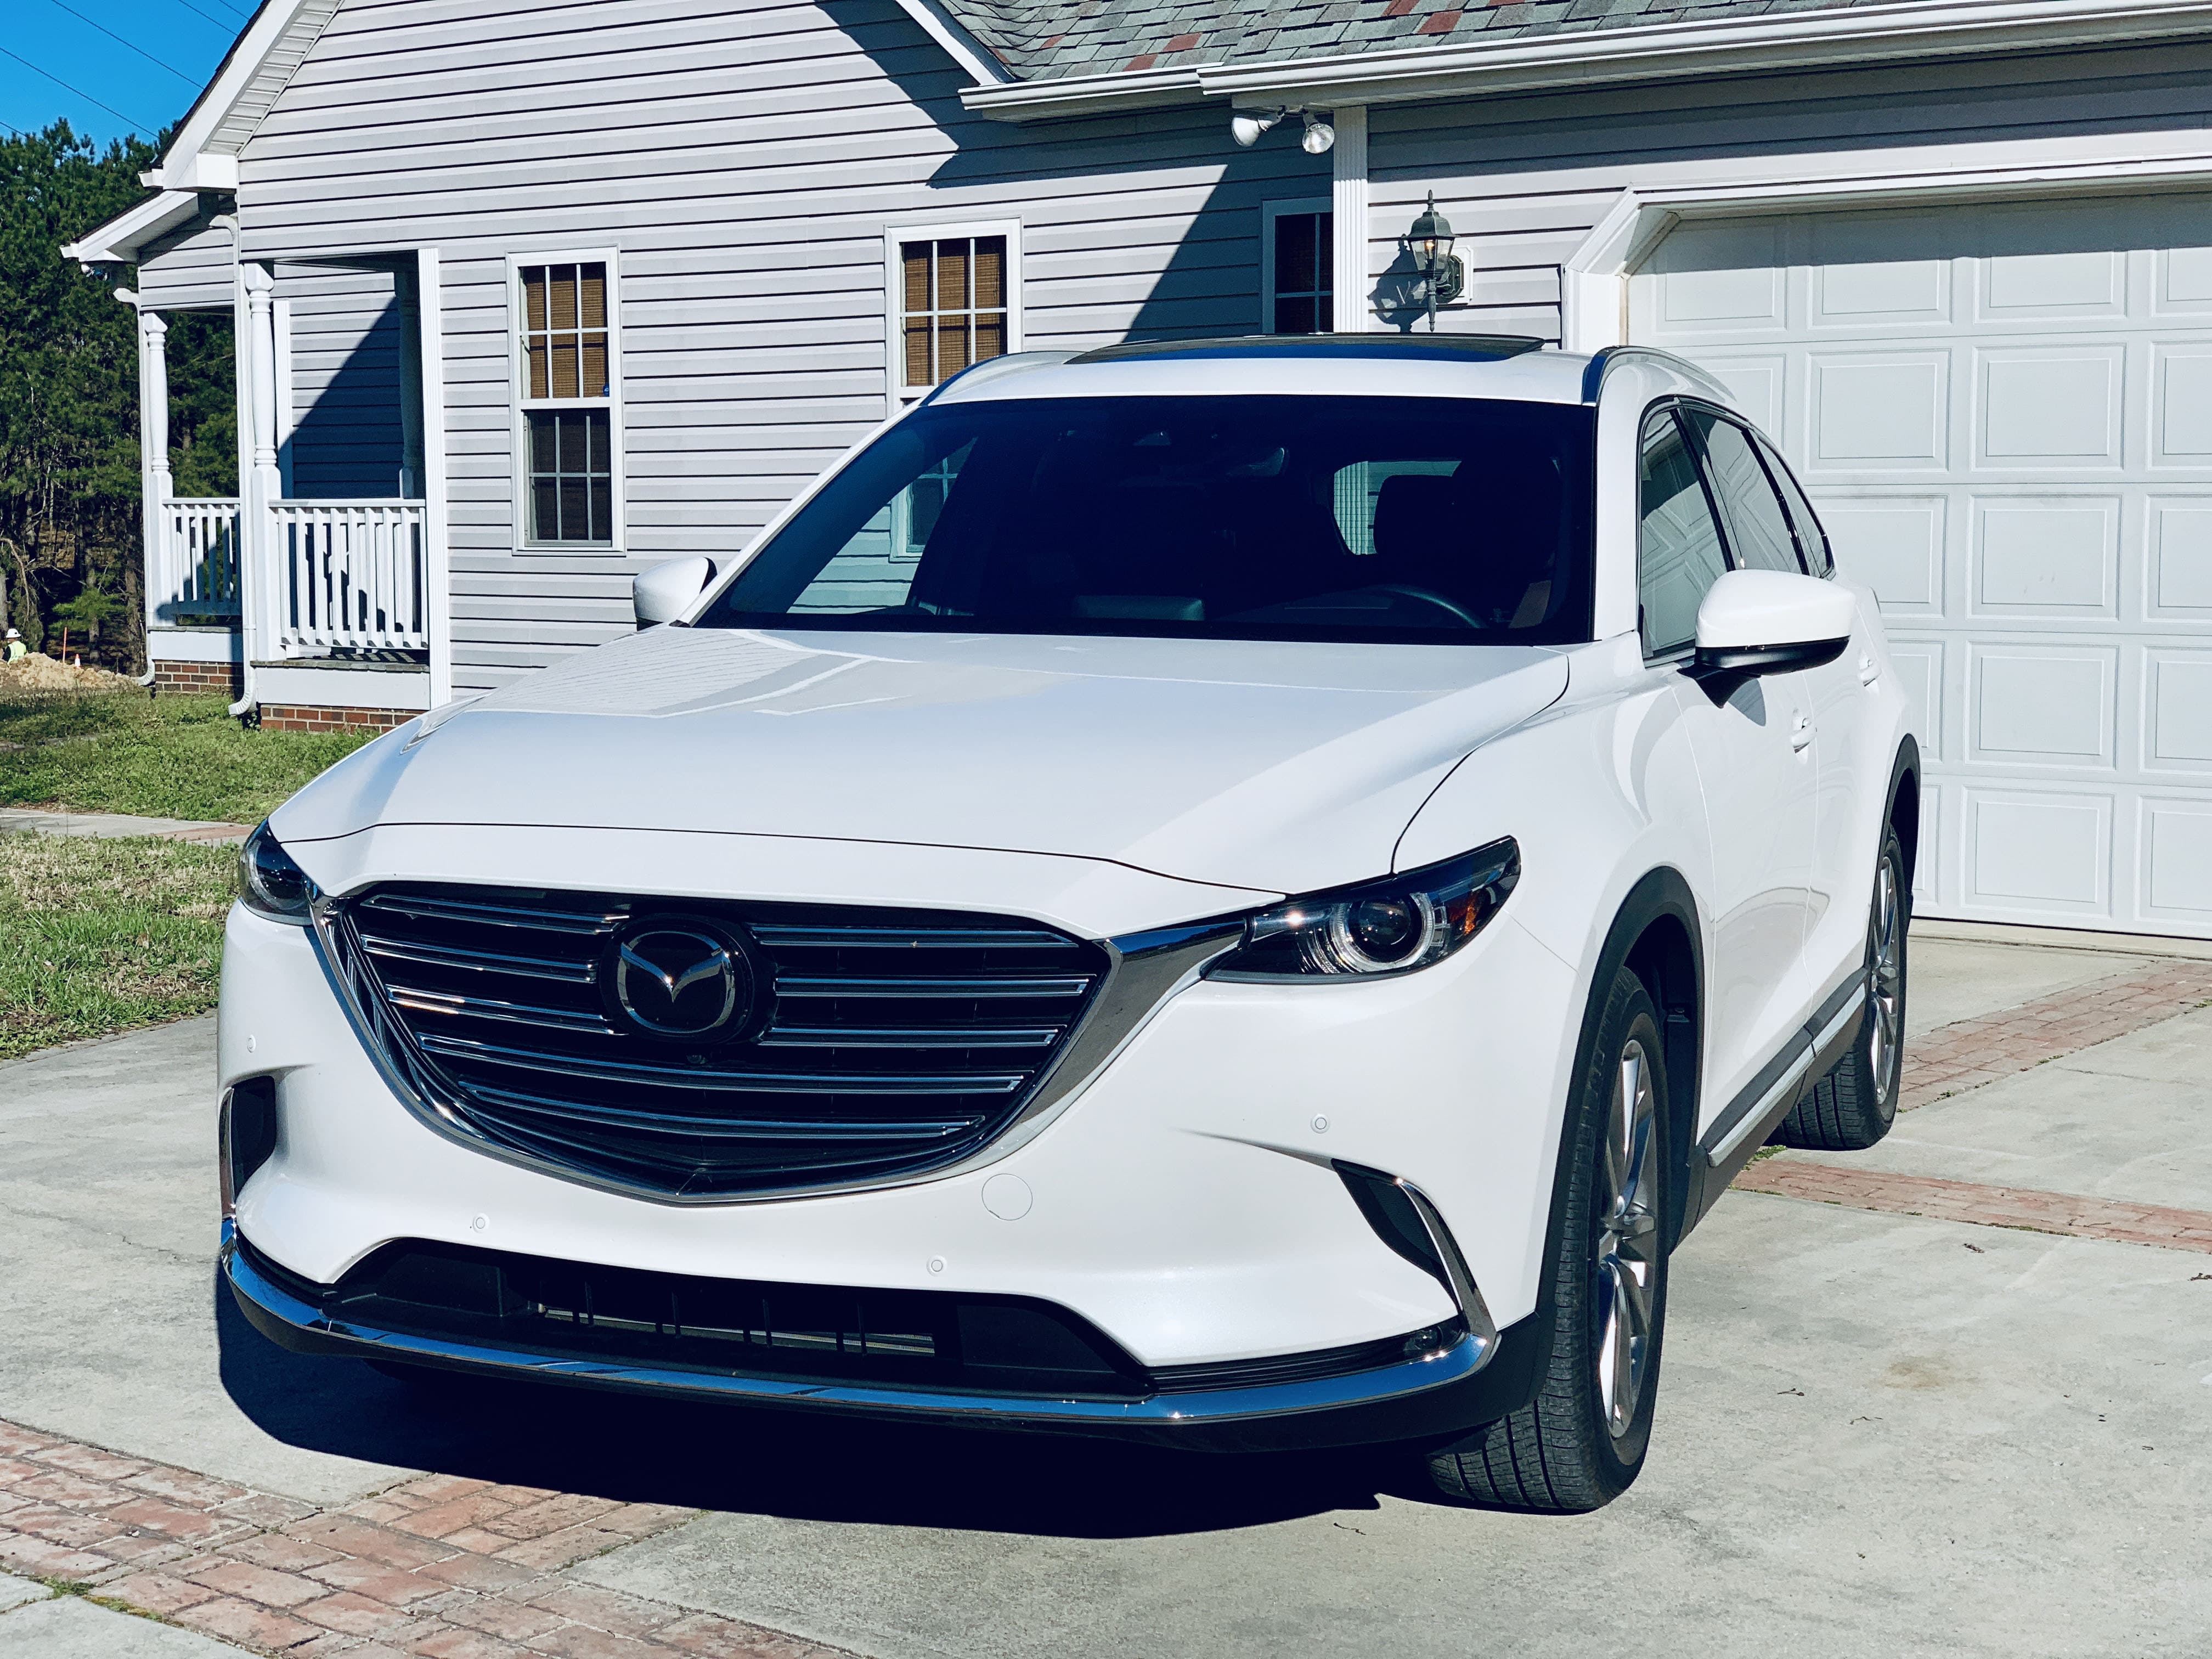 2019 mazda cx9 exterior front view